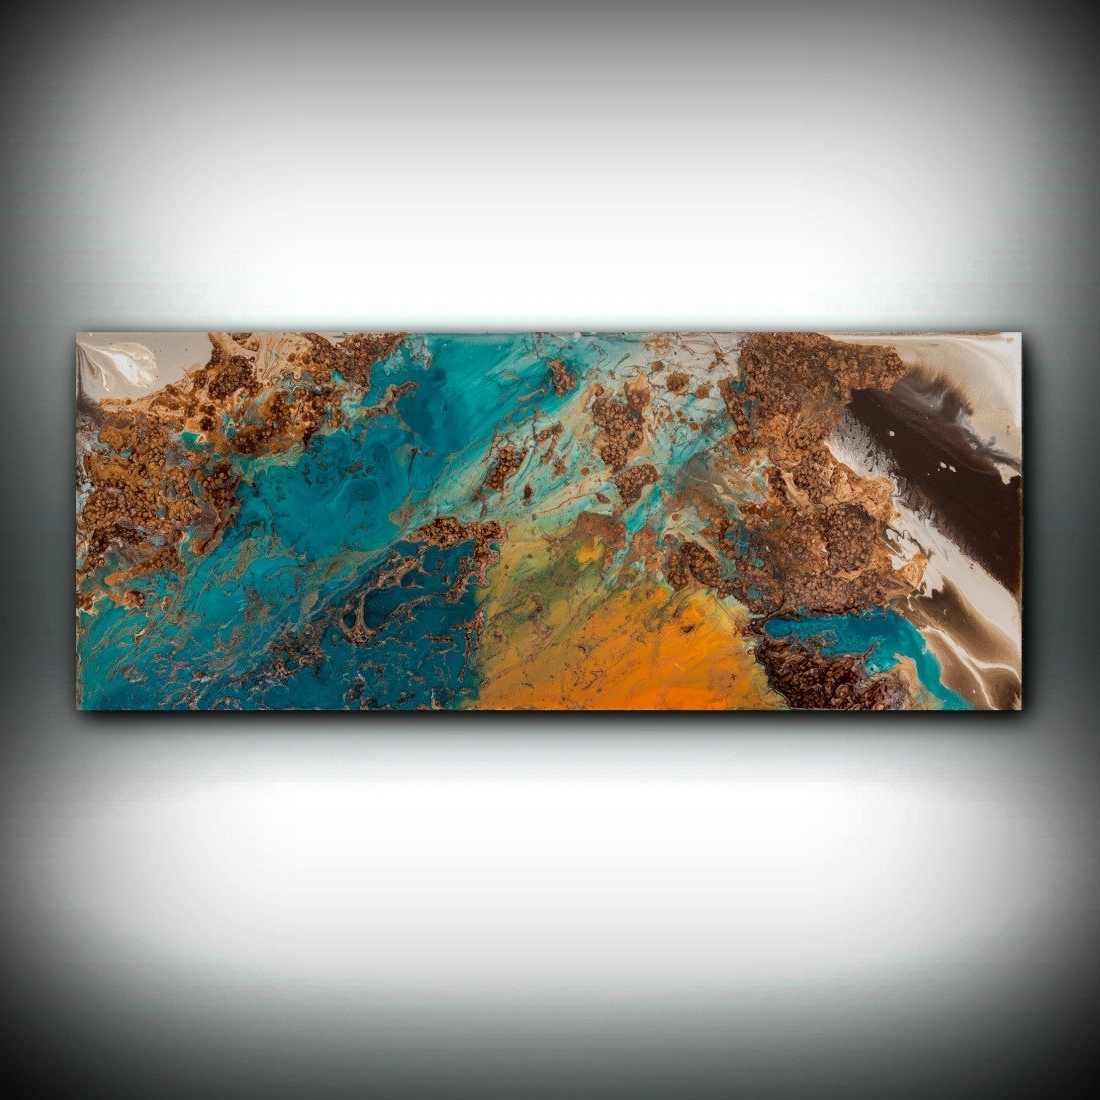 Most Popular Sale Blue And Copper Art, Wall Art Prints Fine Art Prints Abstract With Red And Turquoise Wall Art (View 4 of 15)